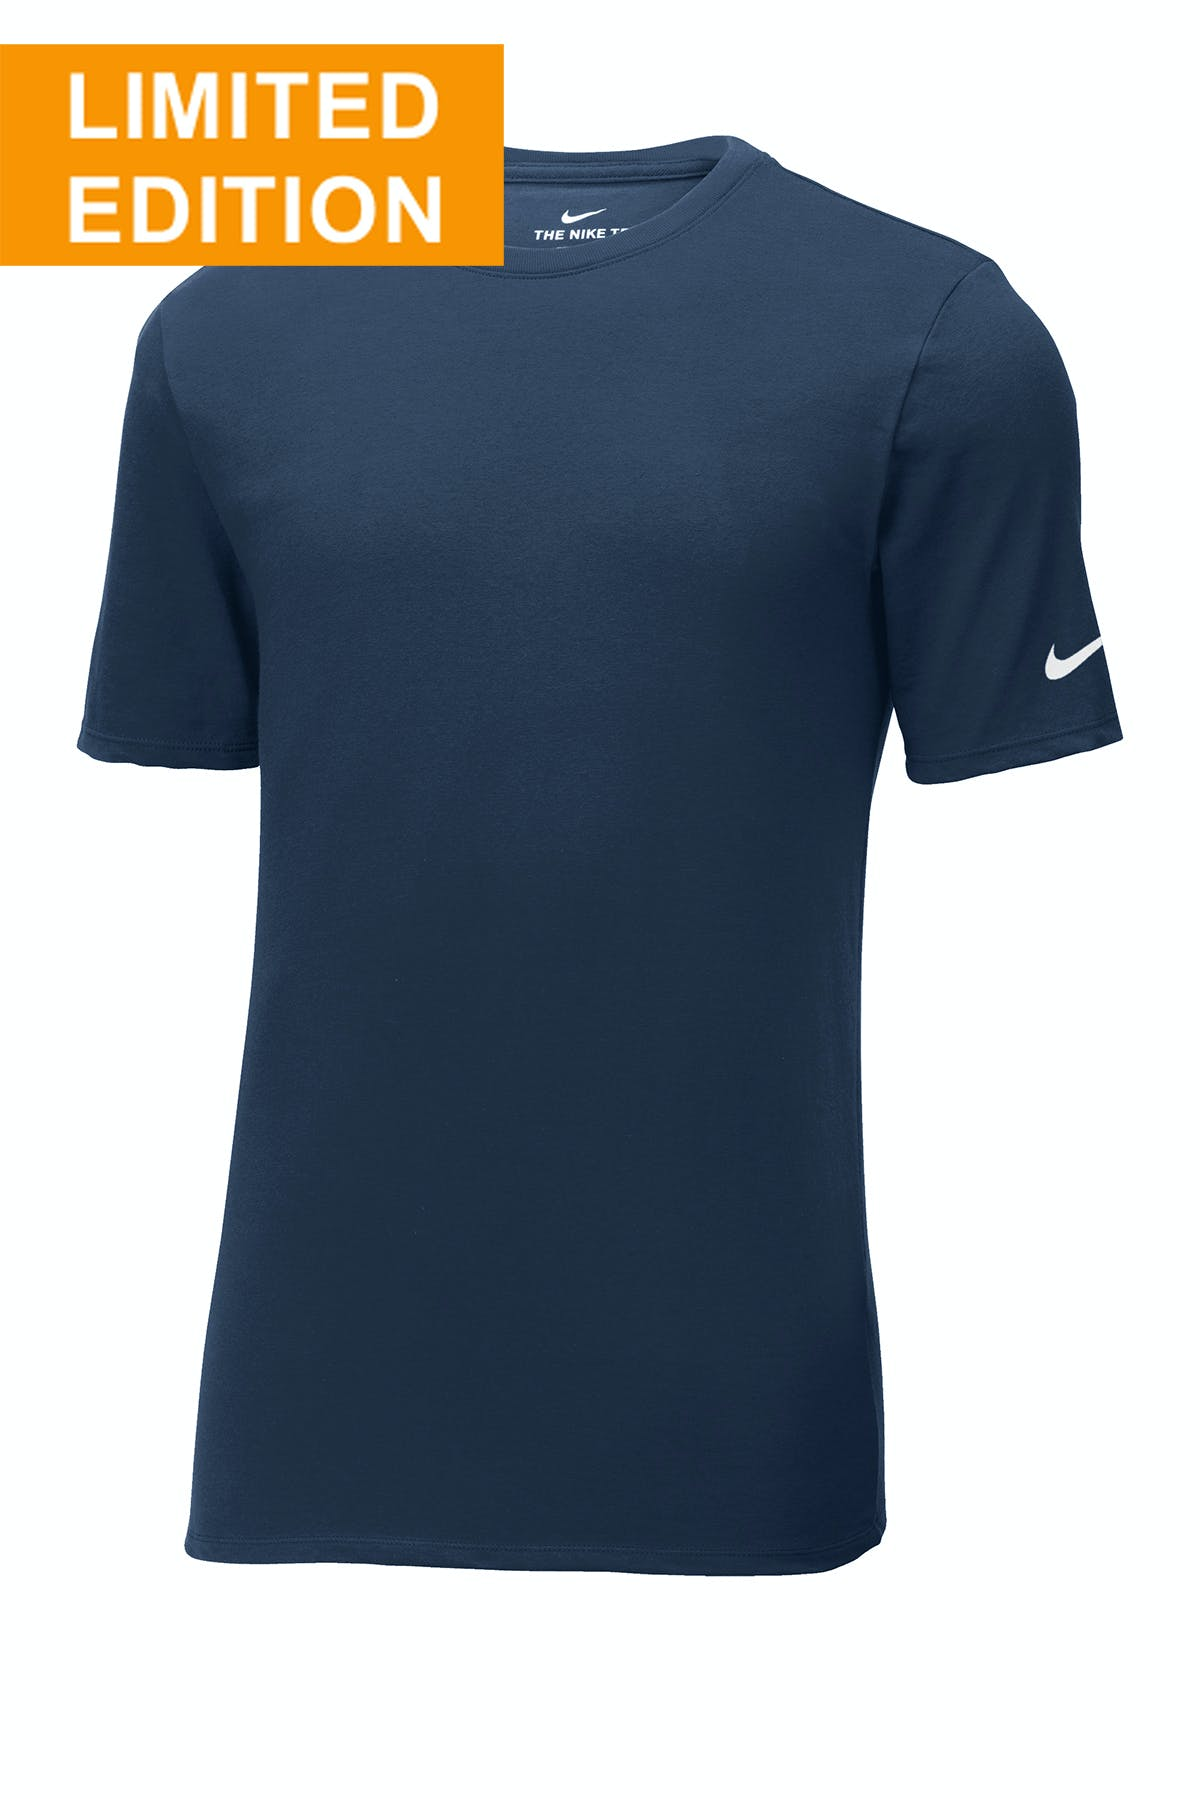 Nike Core Cotton Tee - sold by PRINT CITY GRAPHICS, INC